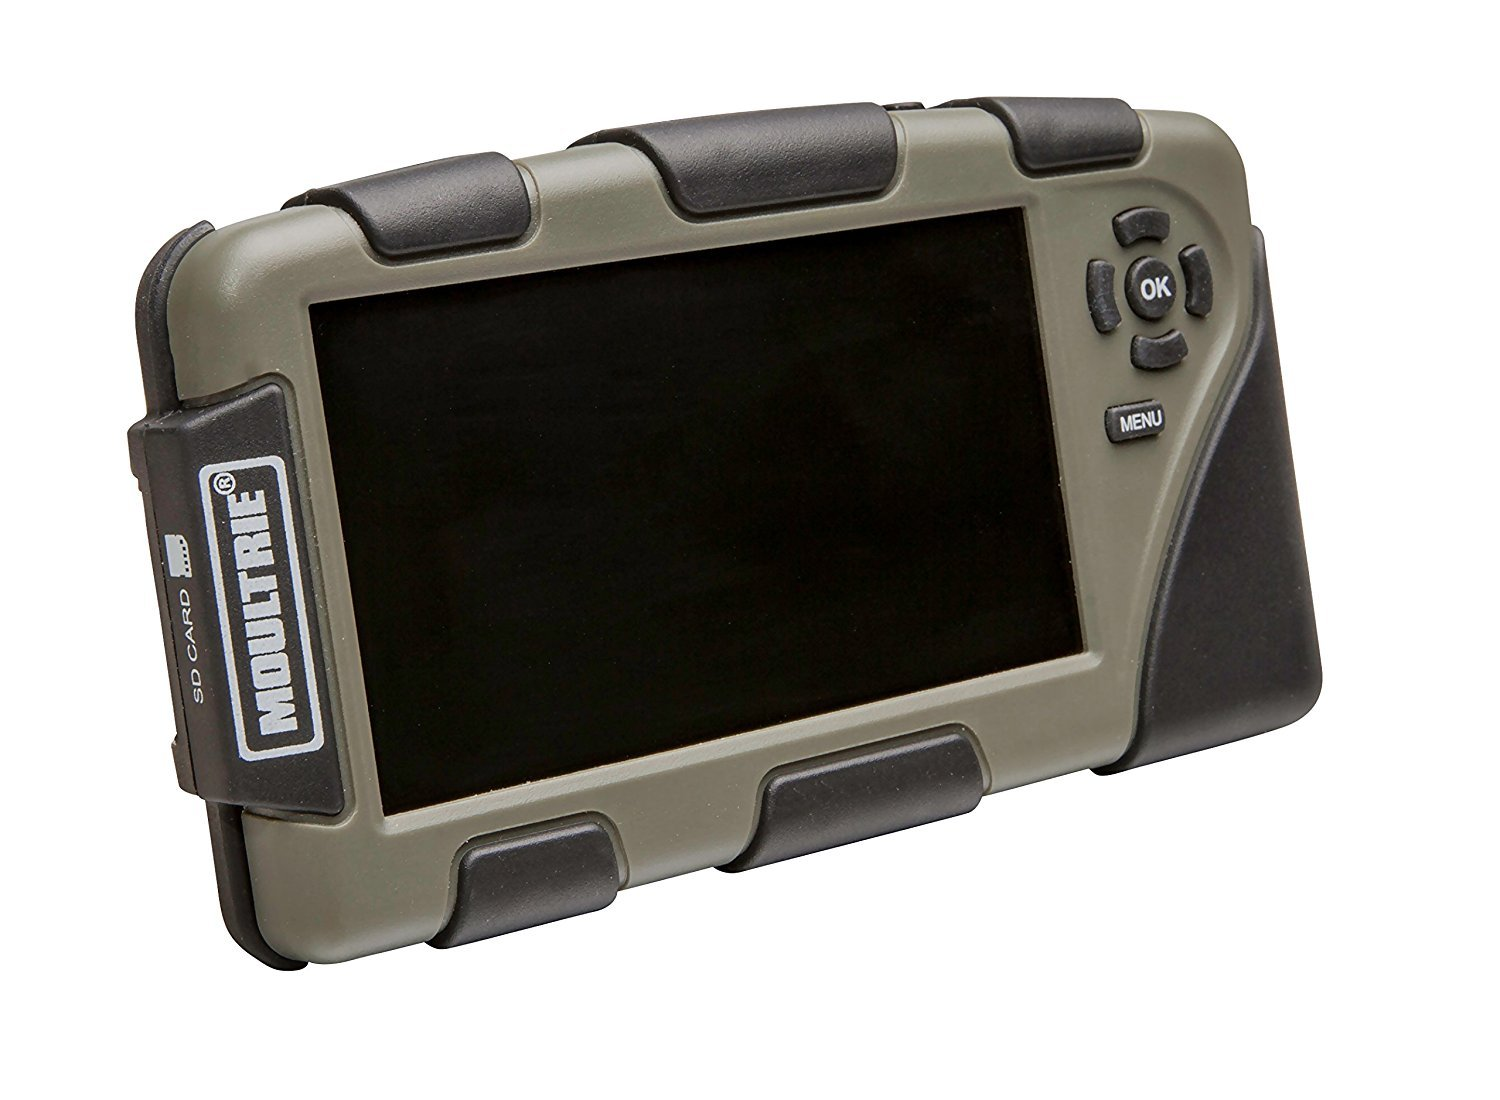 Moultrie 4.3″ Picture and Video Viewer | Accepts up to 32 GB Cards | Micro USB Connection | Headphone Jack